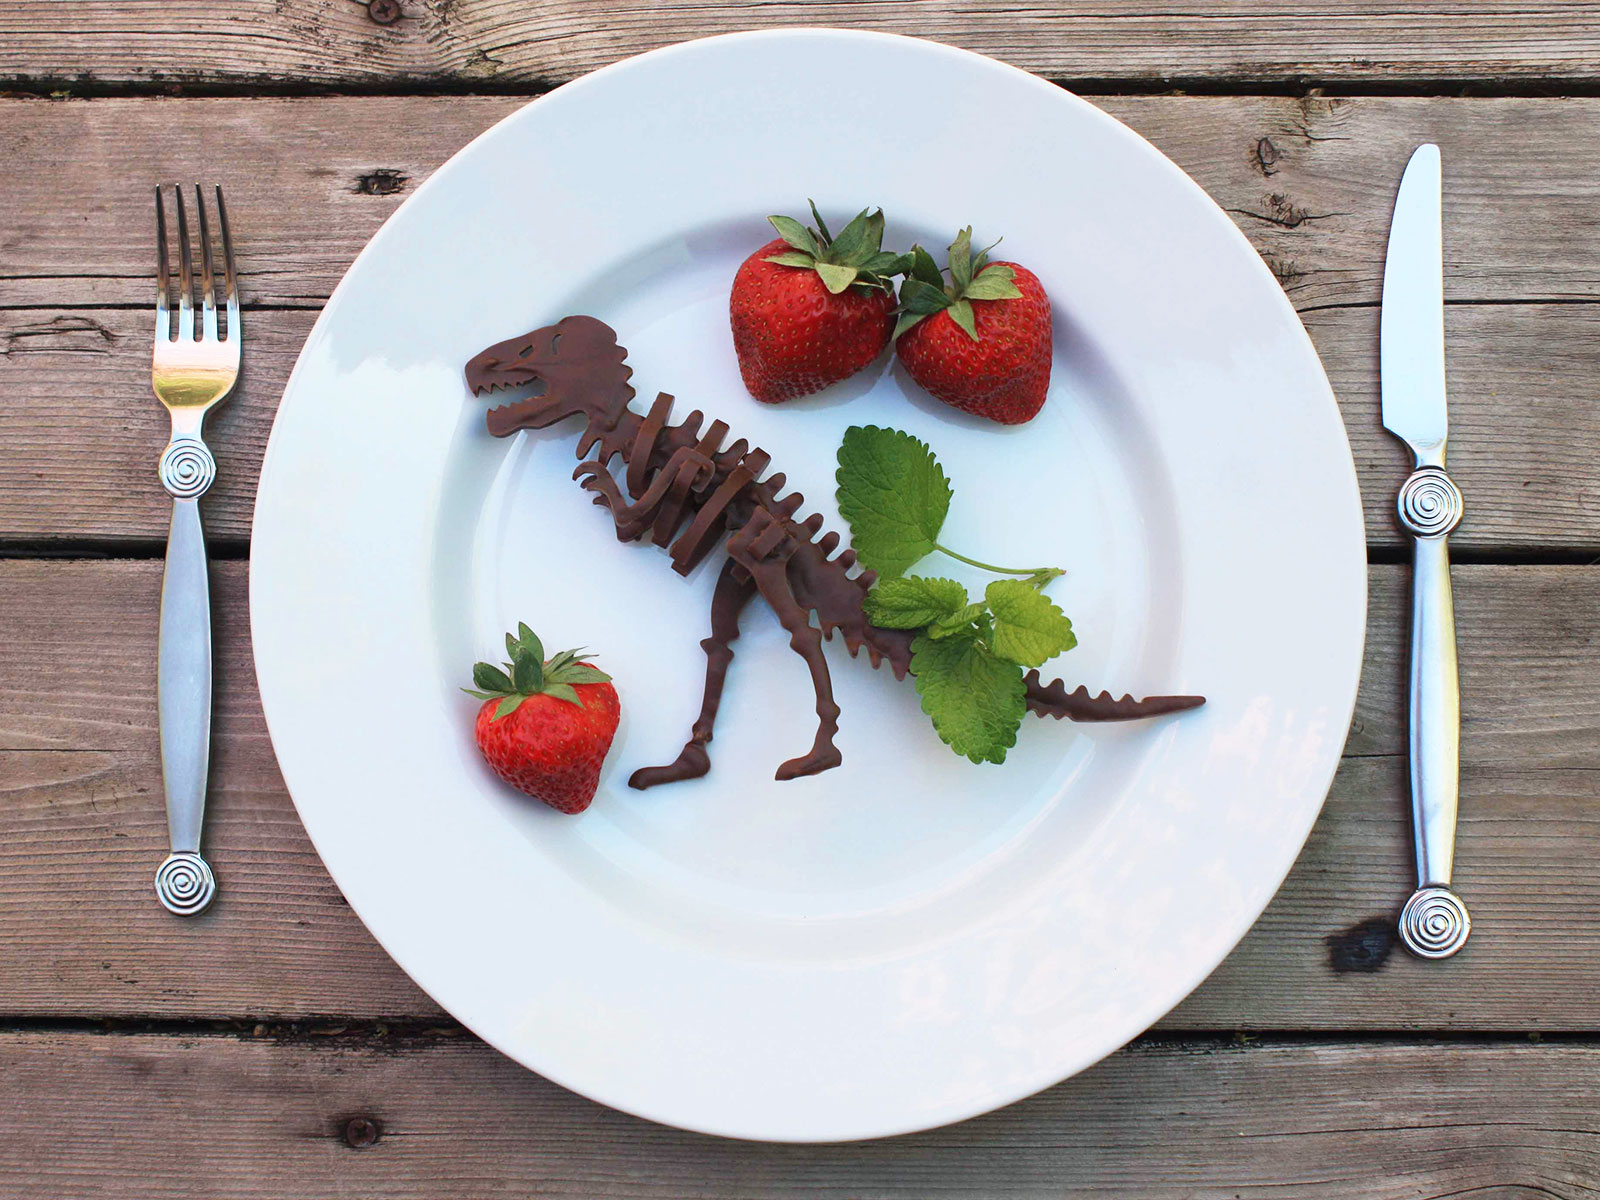 chocolate dinosaur built